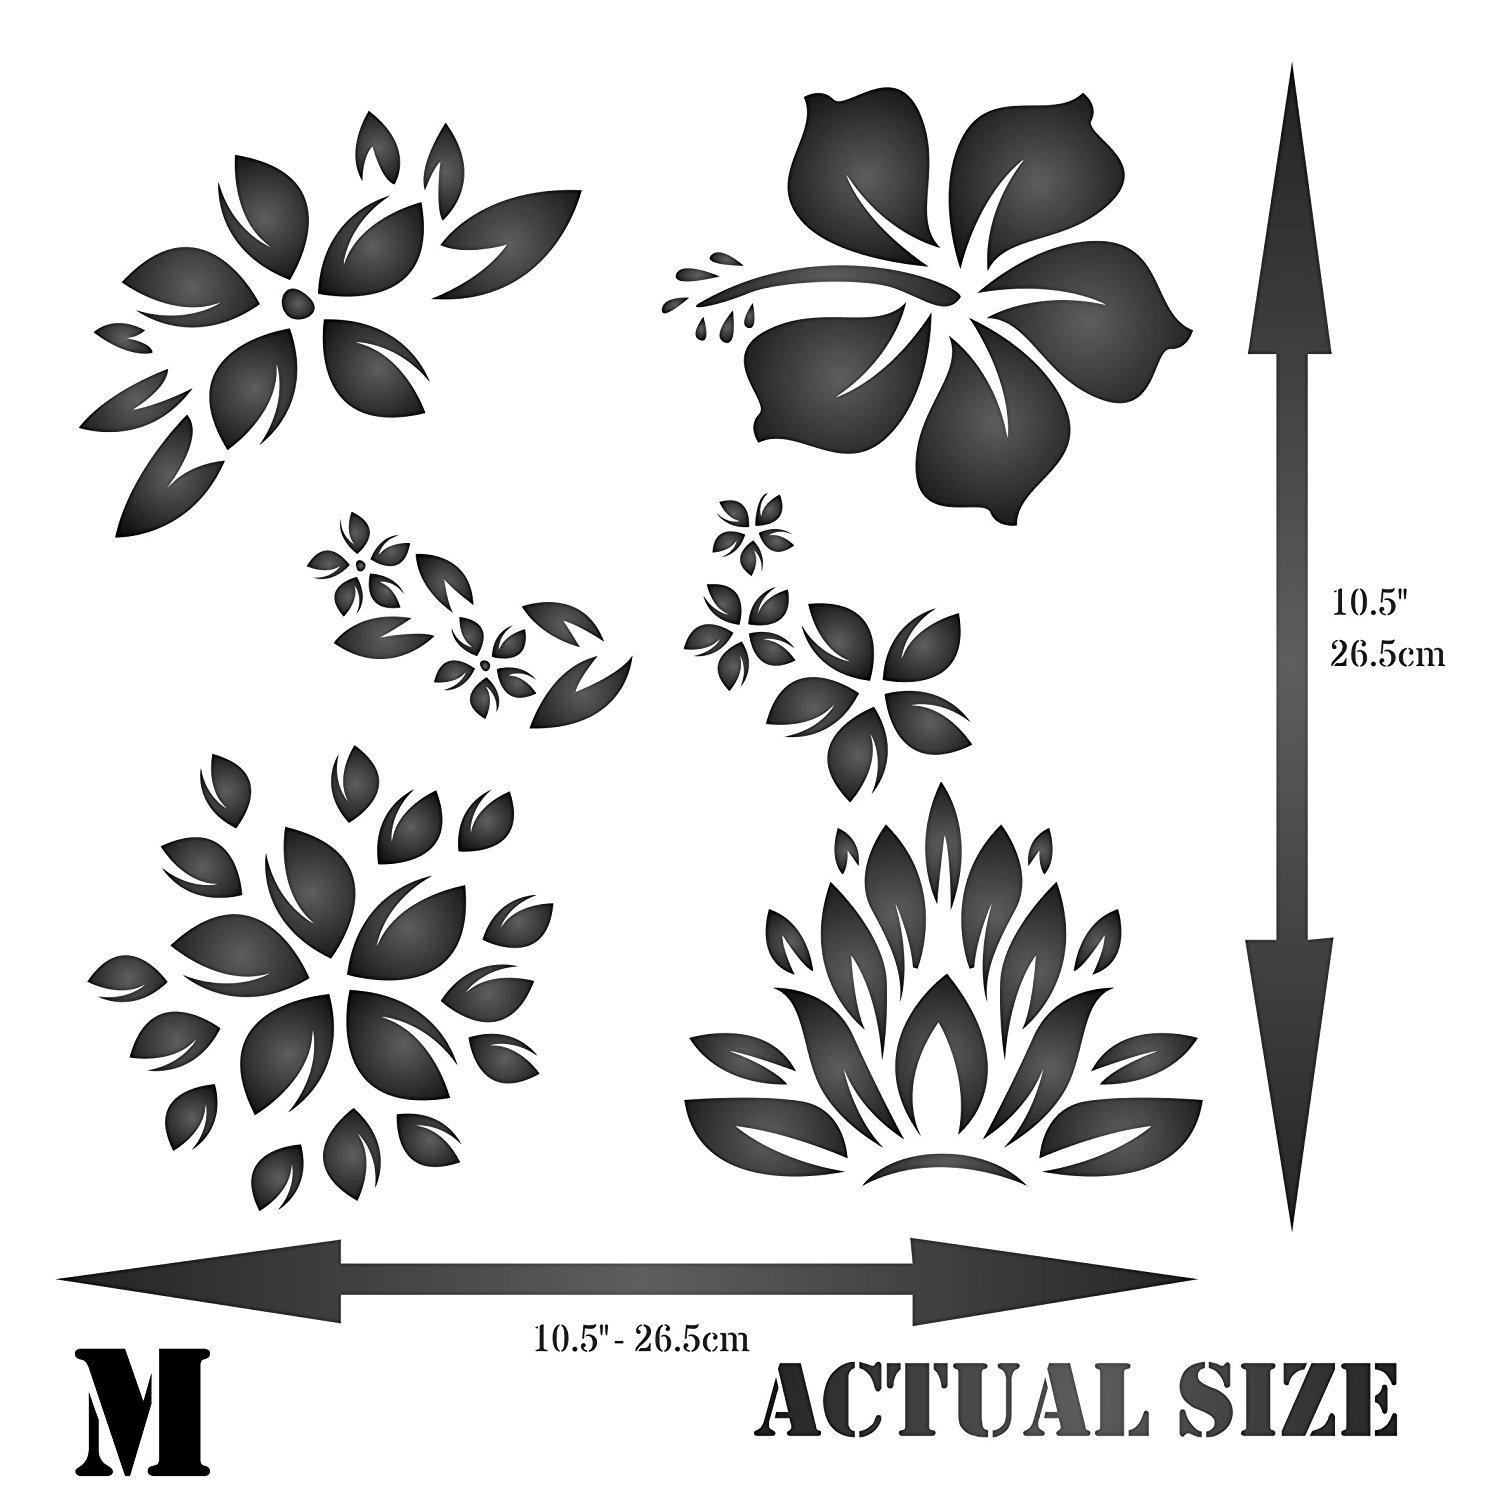 Amazon tropical flowers stencil size 105w x 105h amazon tropical flowers stencil size 105w x 105h reusable wall stencils for painting best quality template allover wallpaper ideas use on izmirmasajfo